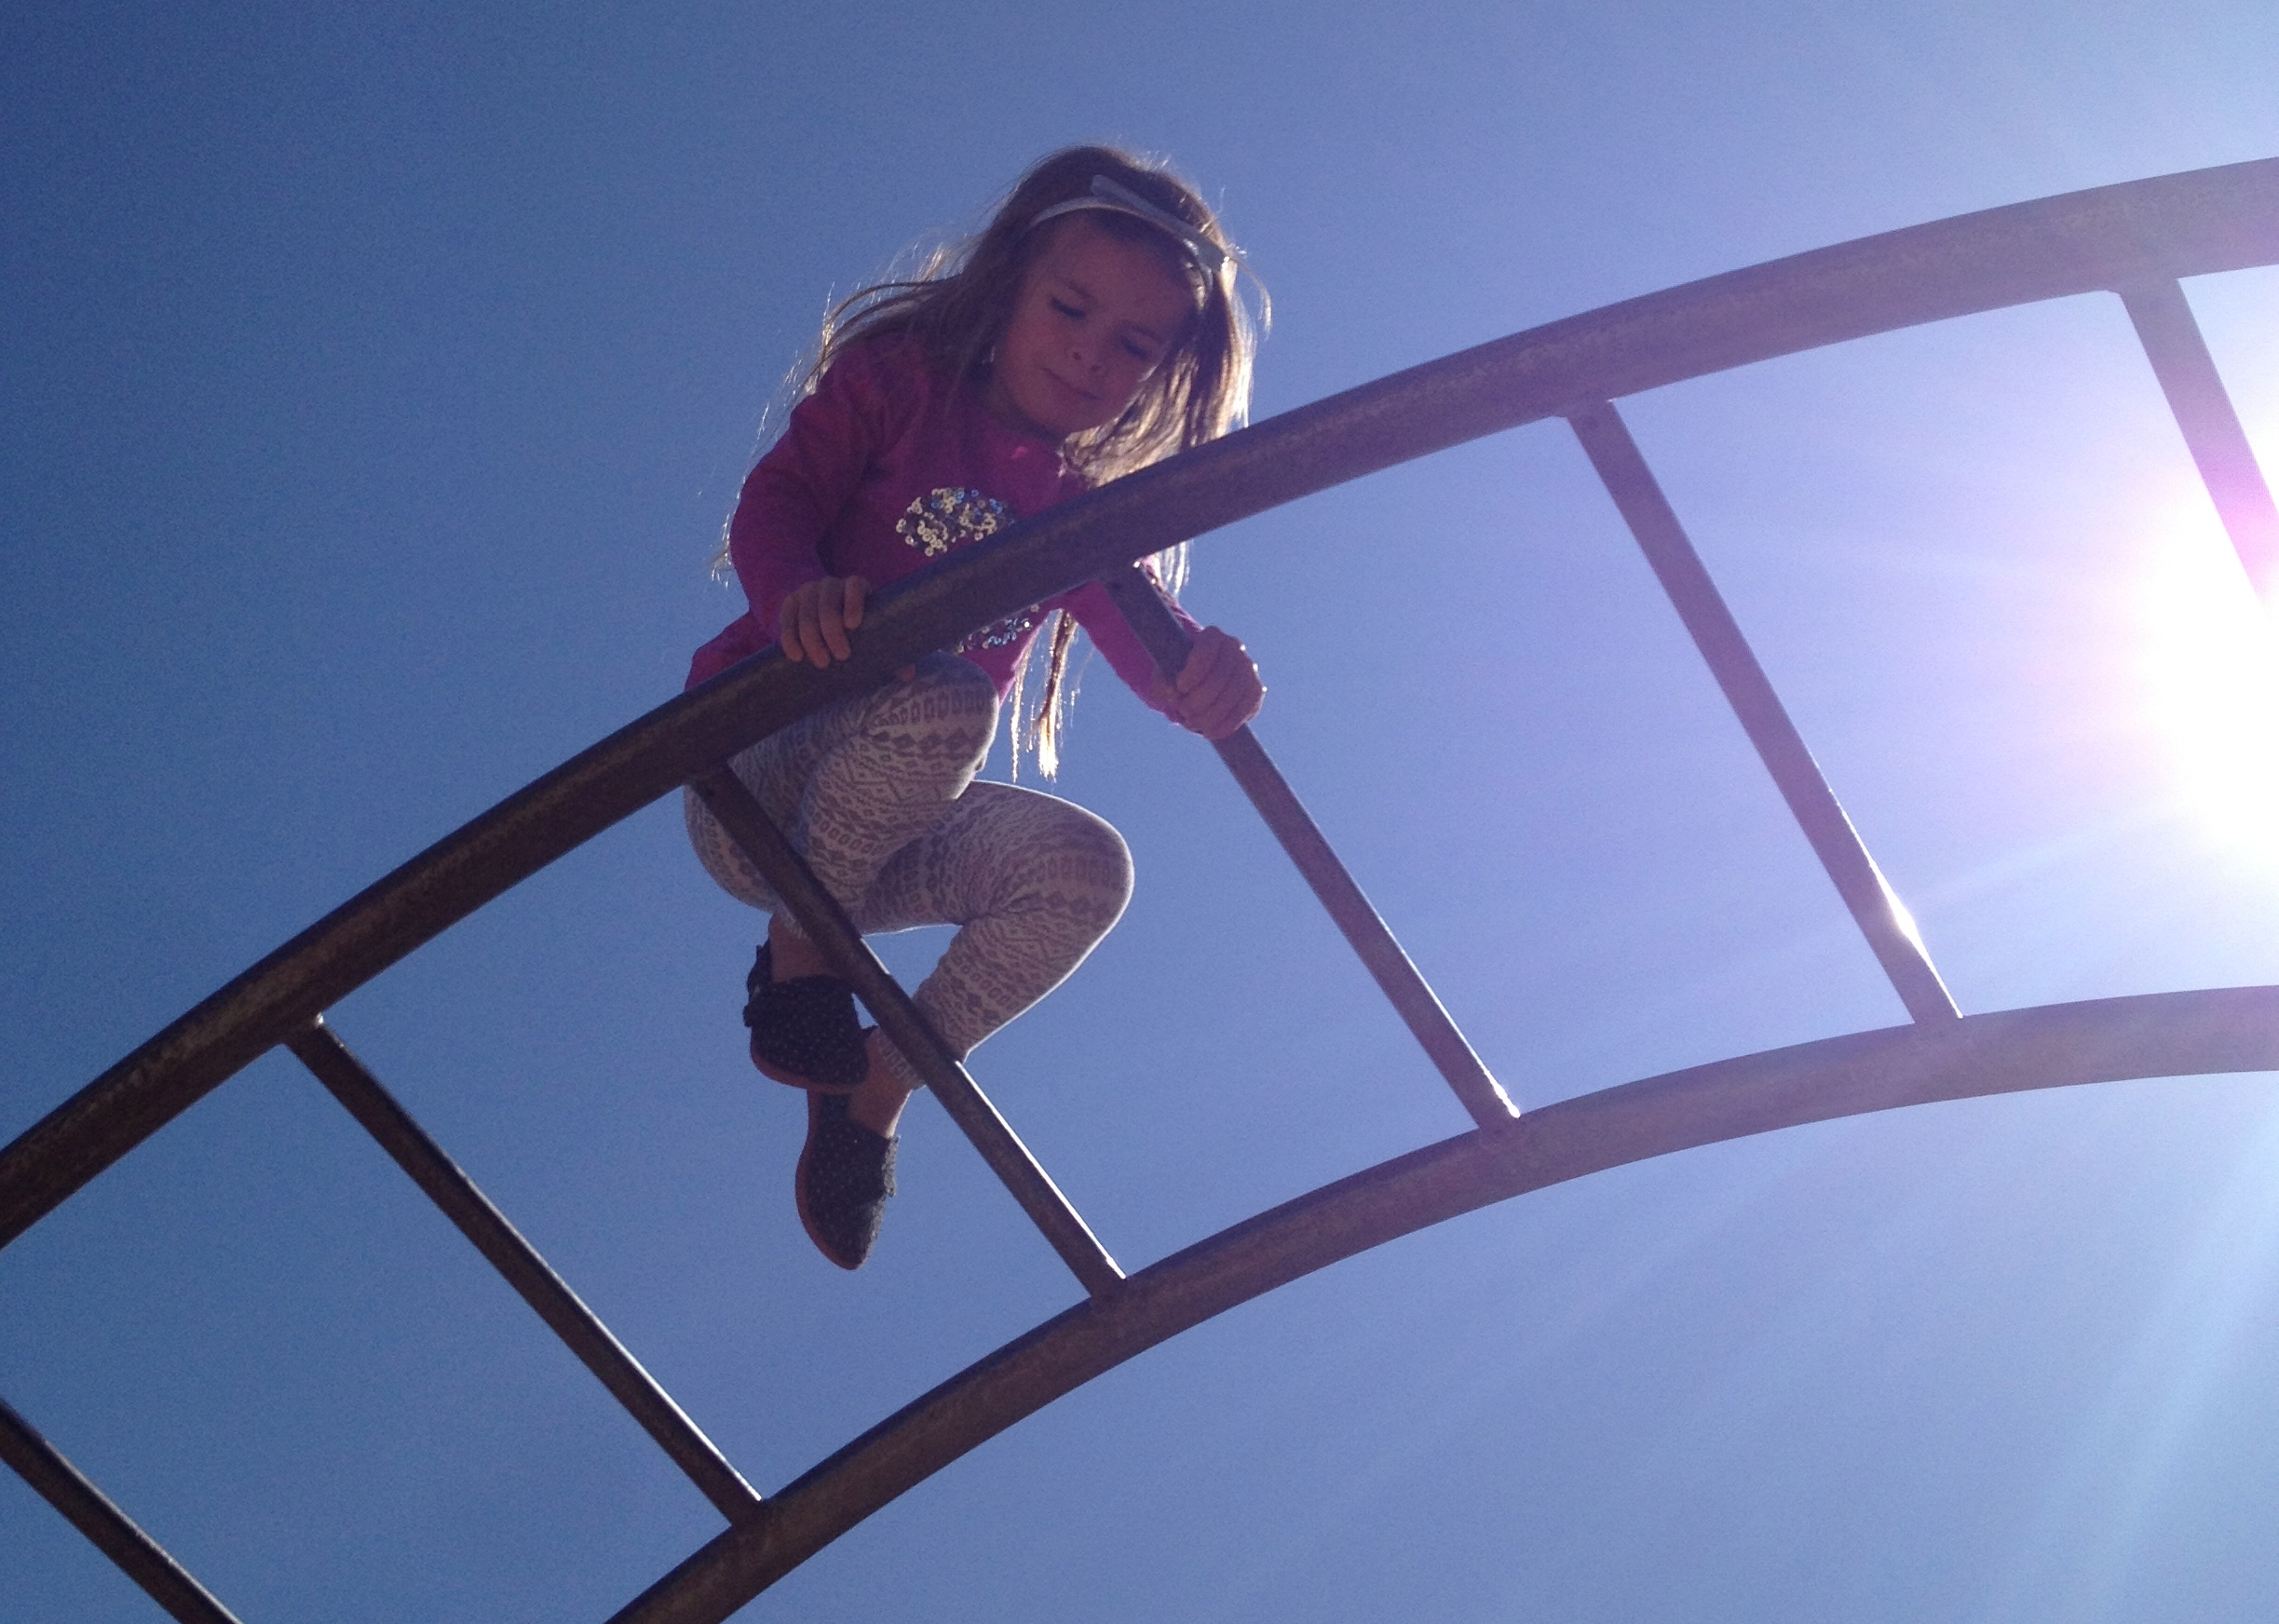 """this little rainbow climbing thing in Diamond Heights was like a million feet off the ground and terrifying. I got to go """"save"""" her from it after taking the proud pic. HA. I call it """"healthy fear,"""" which normally my overly brave girl doesn't have. ;)"""